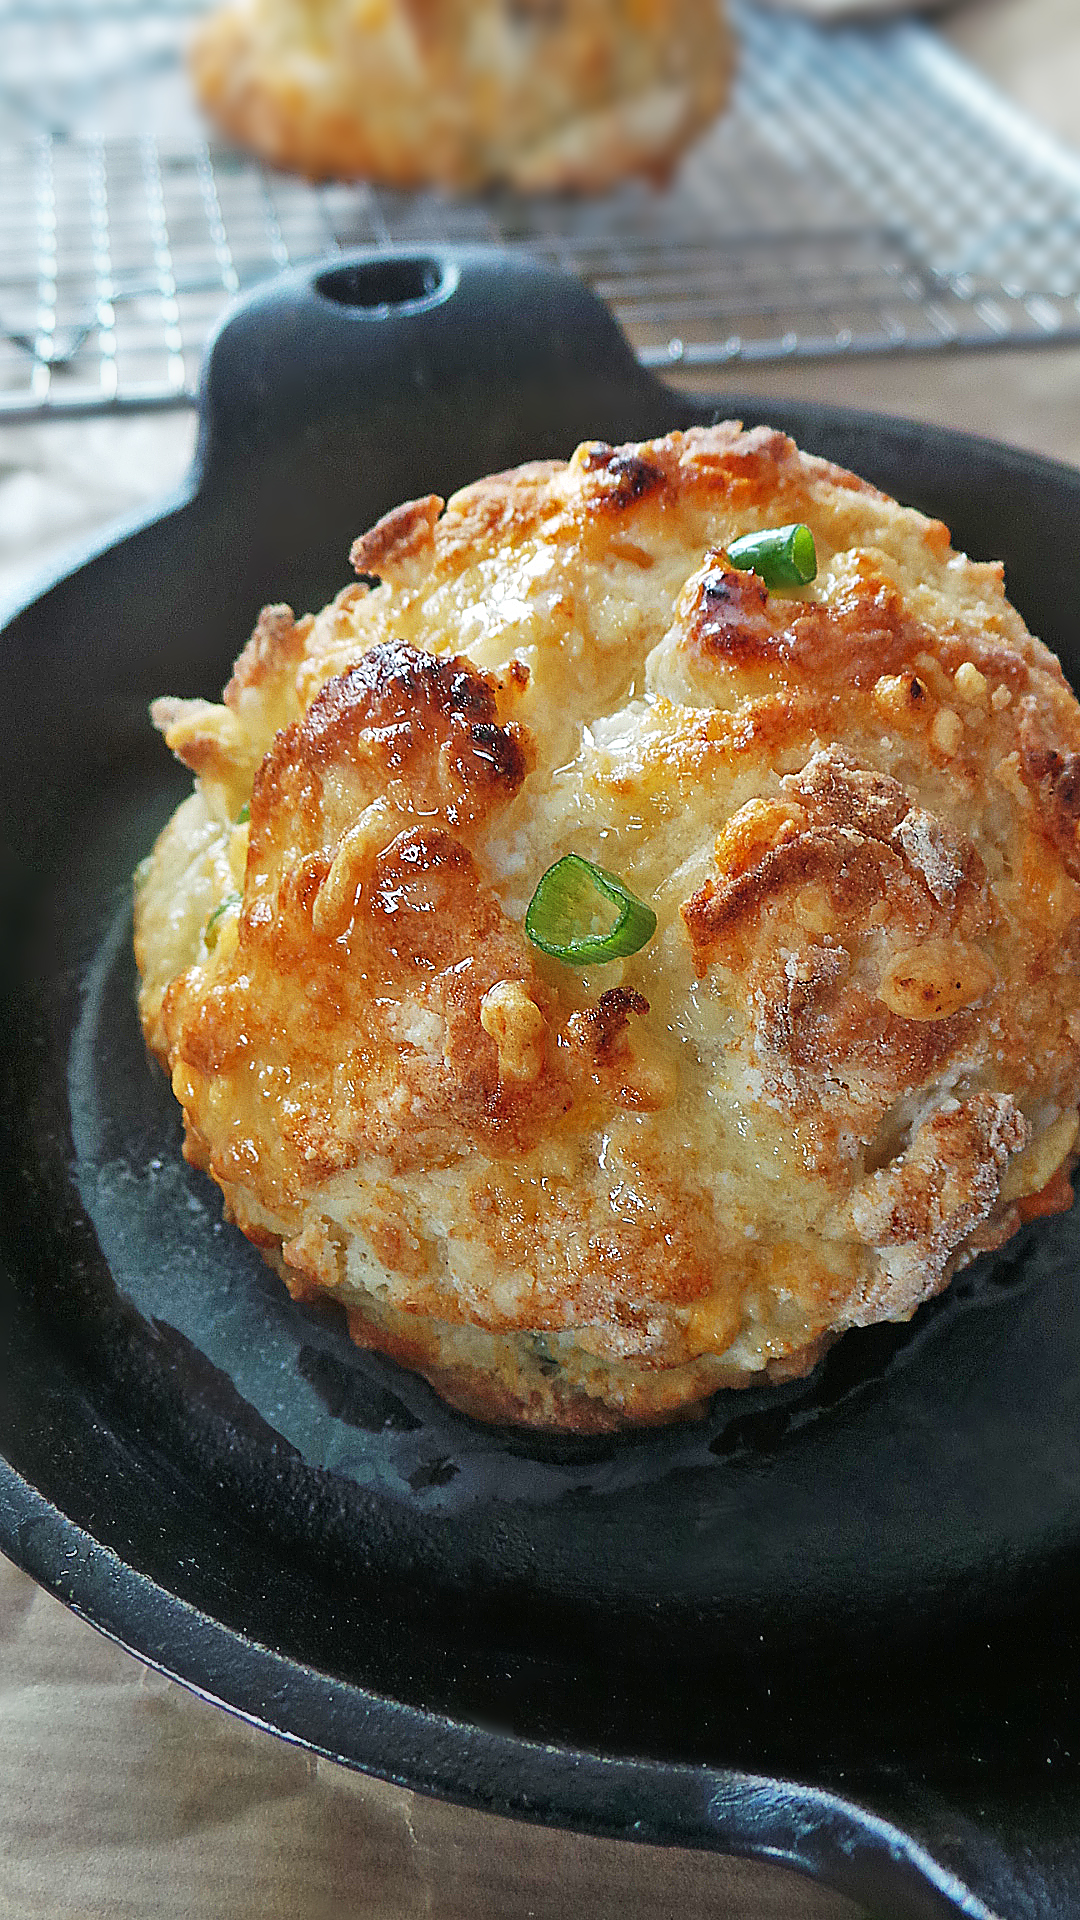 Big and beautiful cheddar biscuits with a fun surprise inside!